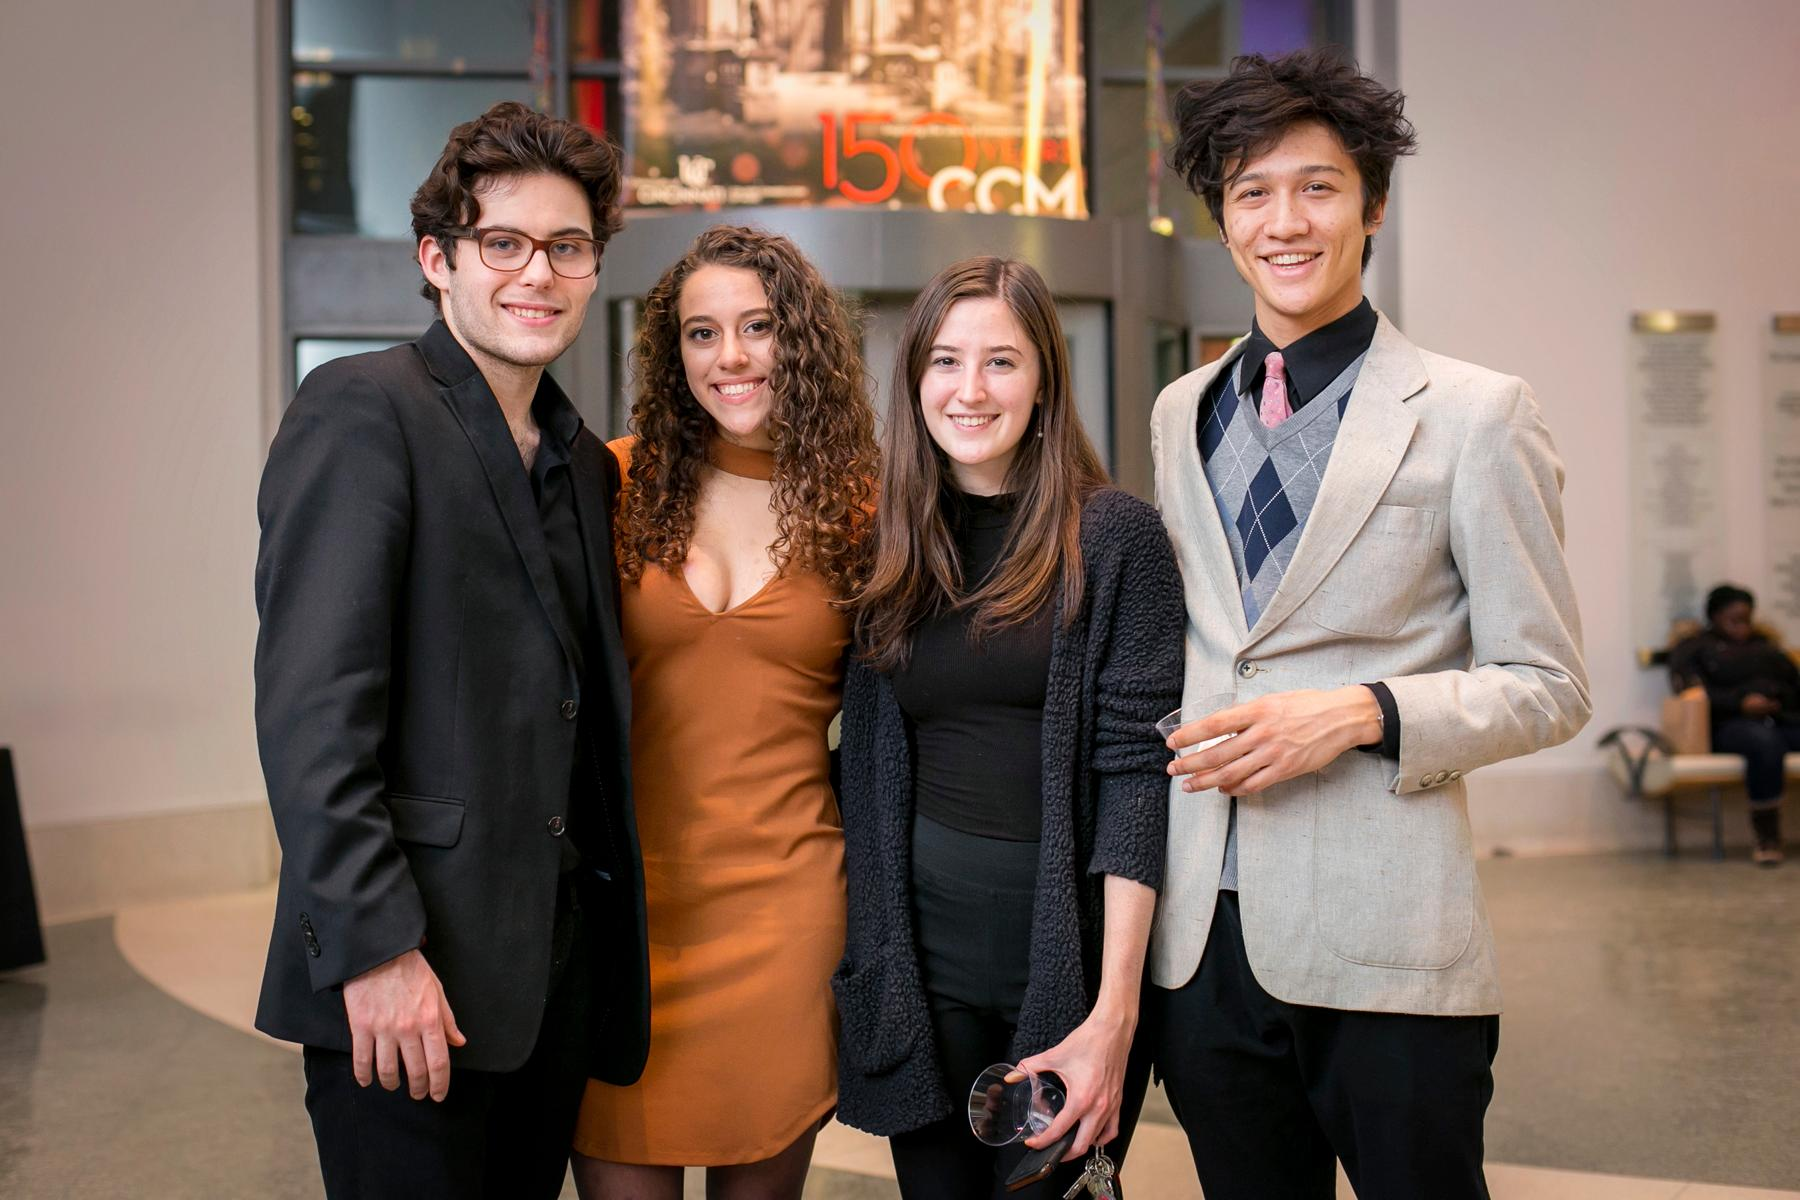 Justin Dawson, Sophie Privitera, Shannon Lock, and Jeremy Myint / Image: Mike Bresnen Photography // Published: 1.20.18